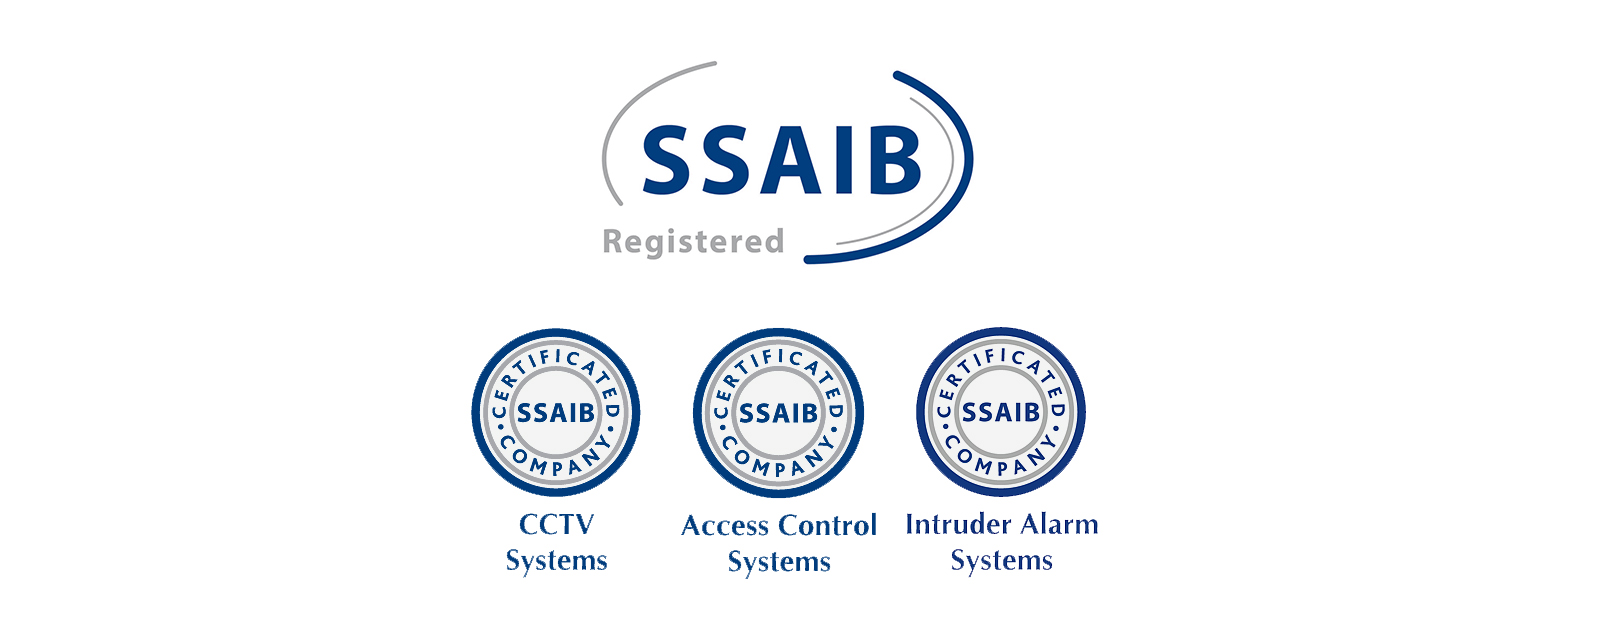 SSAIB Certified and registered